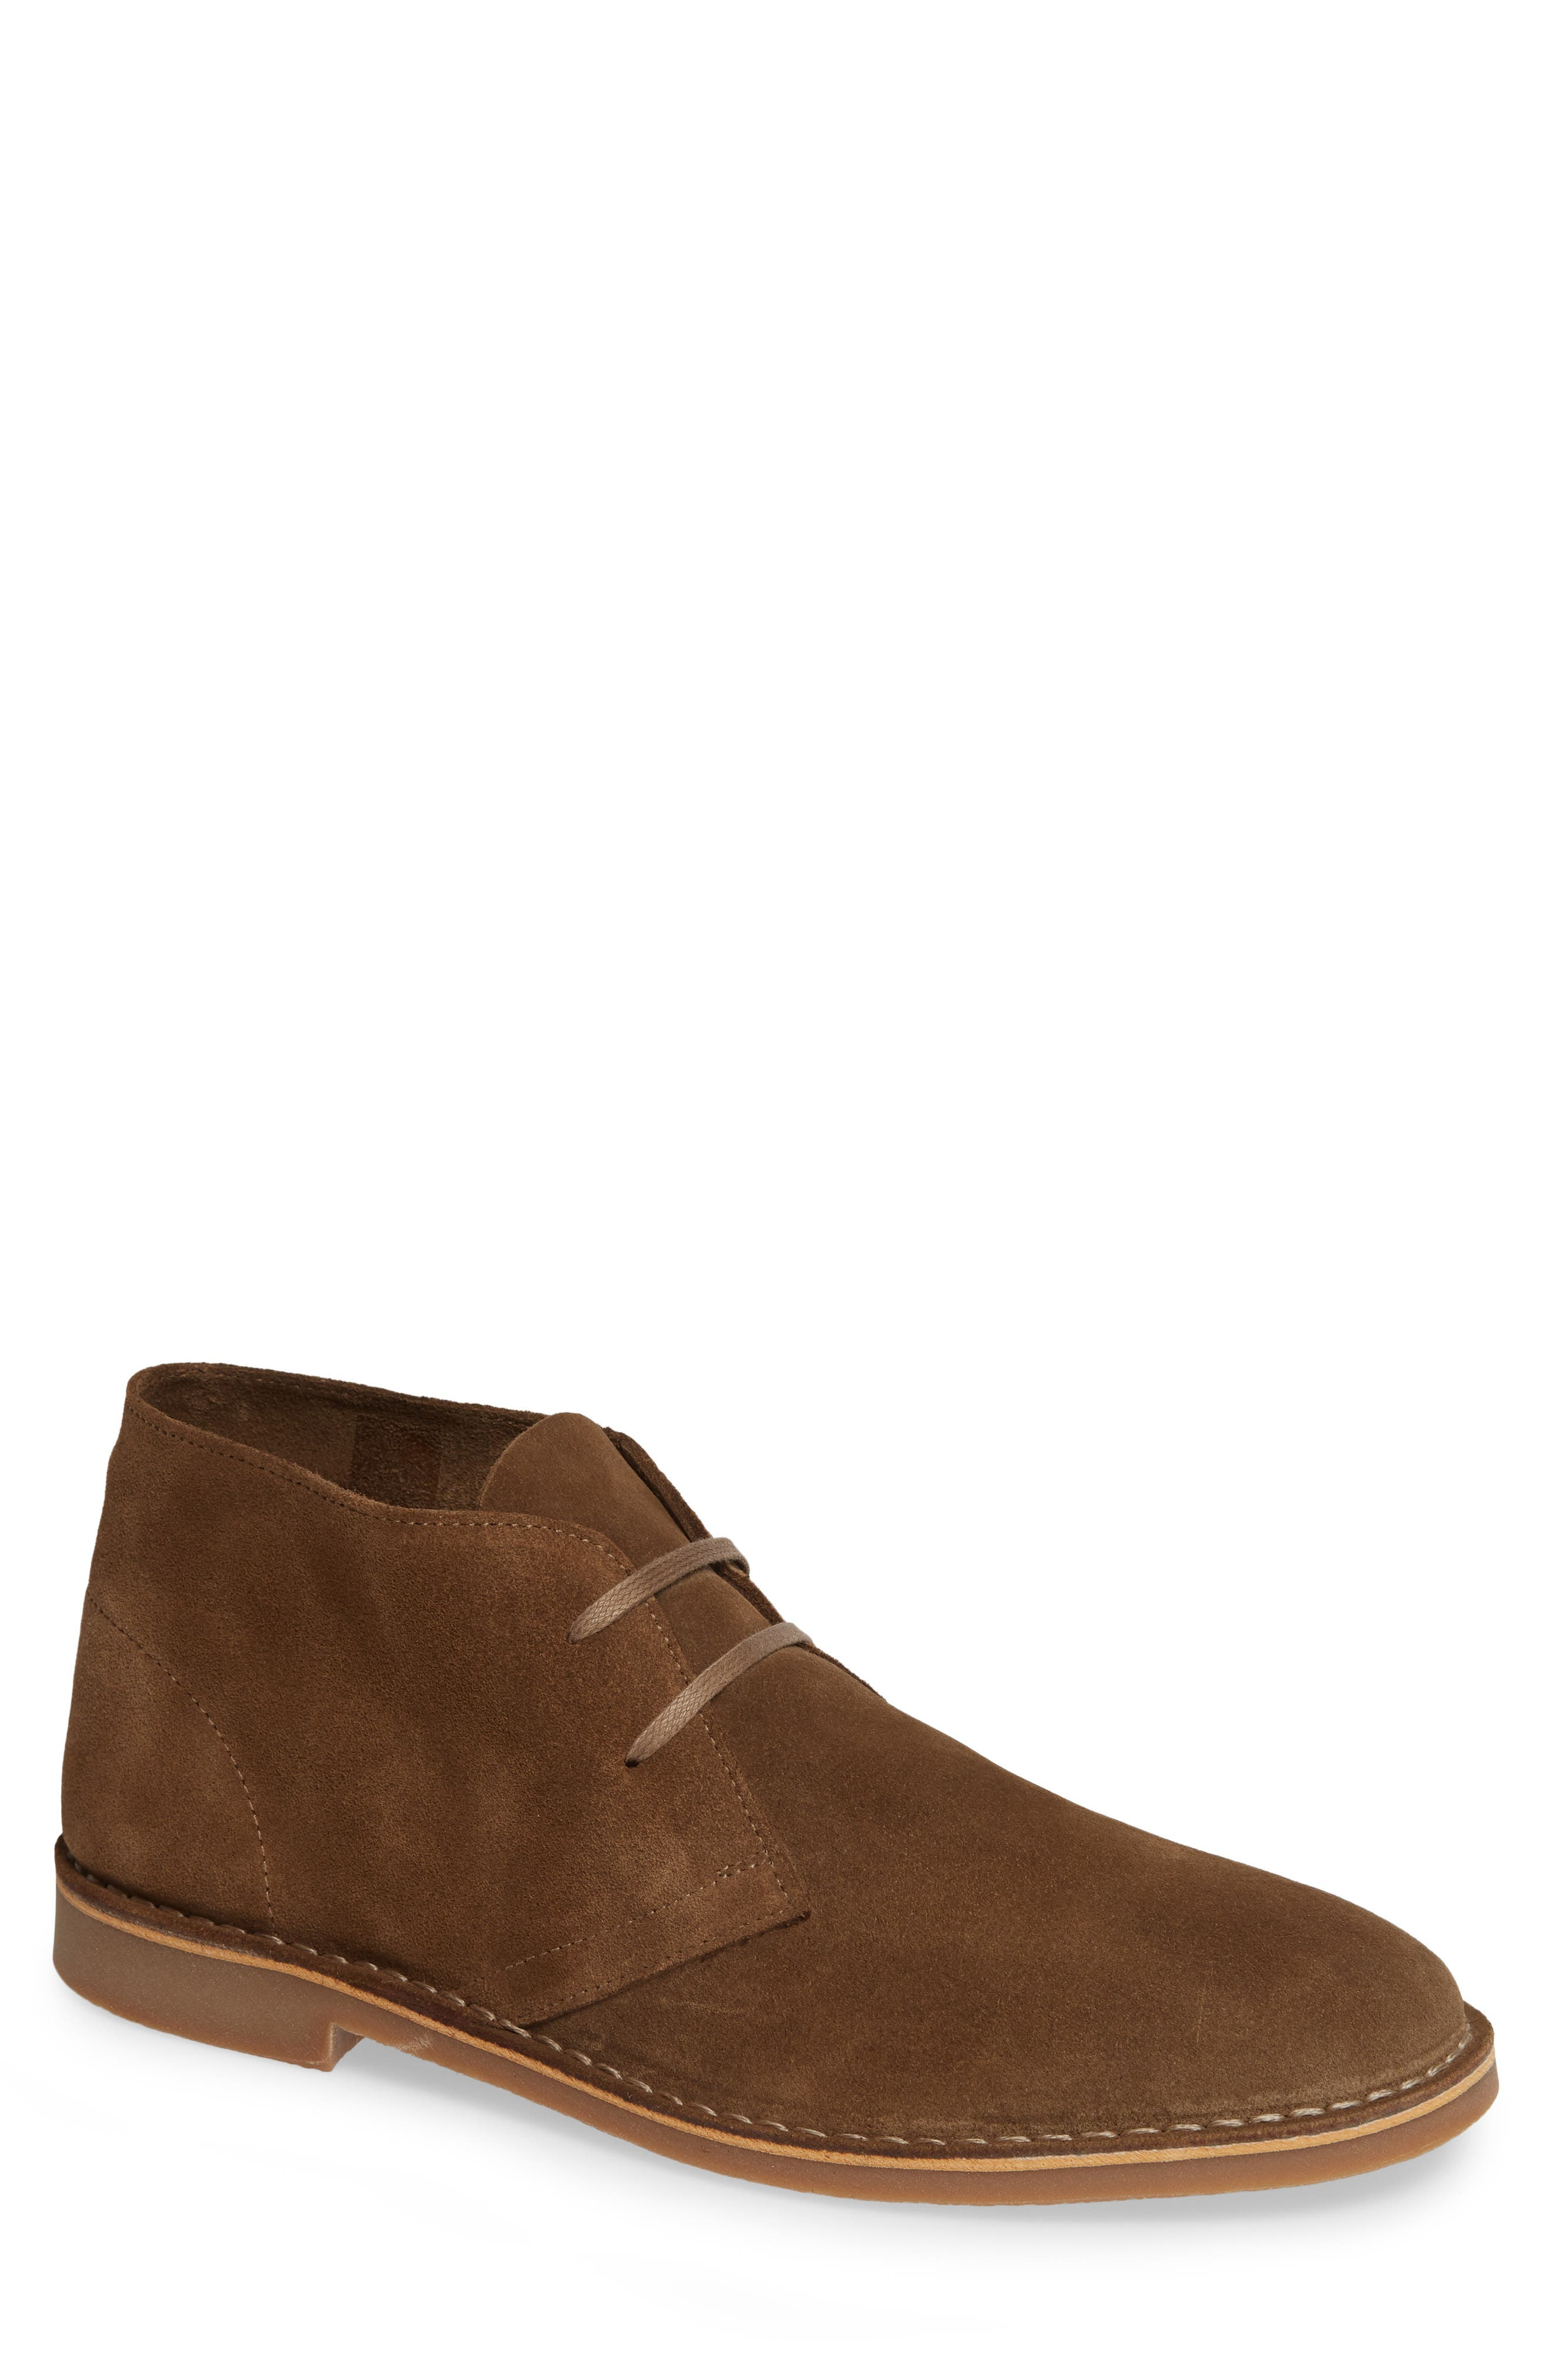 SUPPLY LAB Beau Chukka Boot in Sand Suede